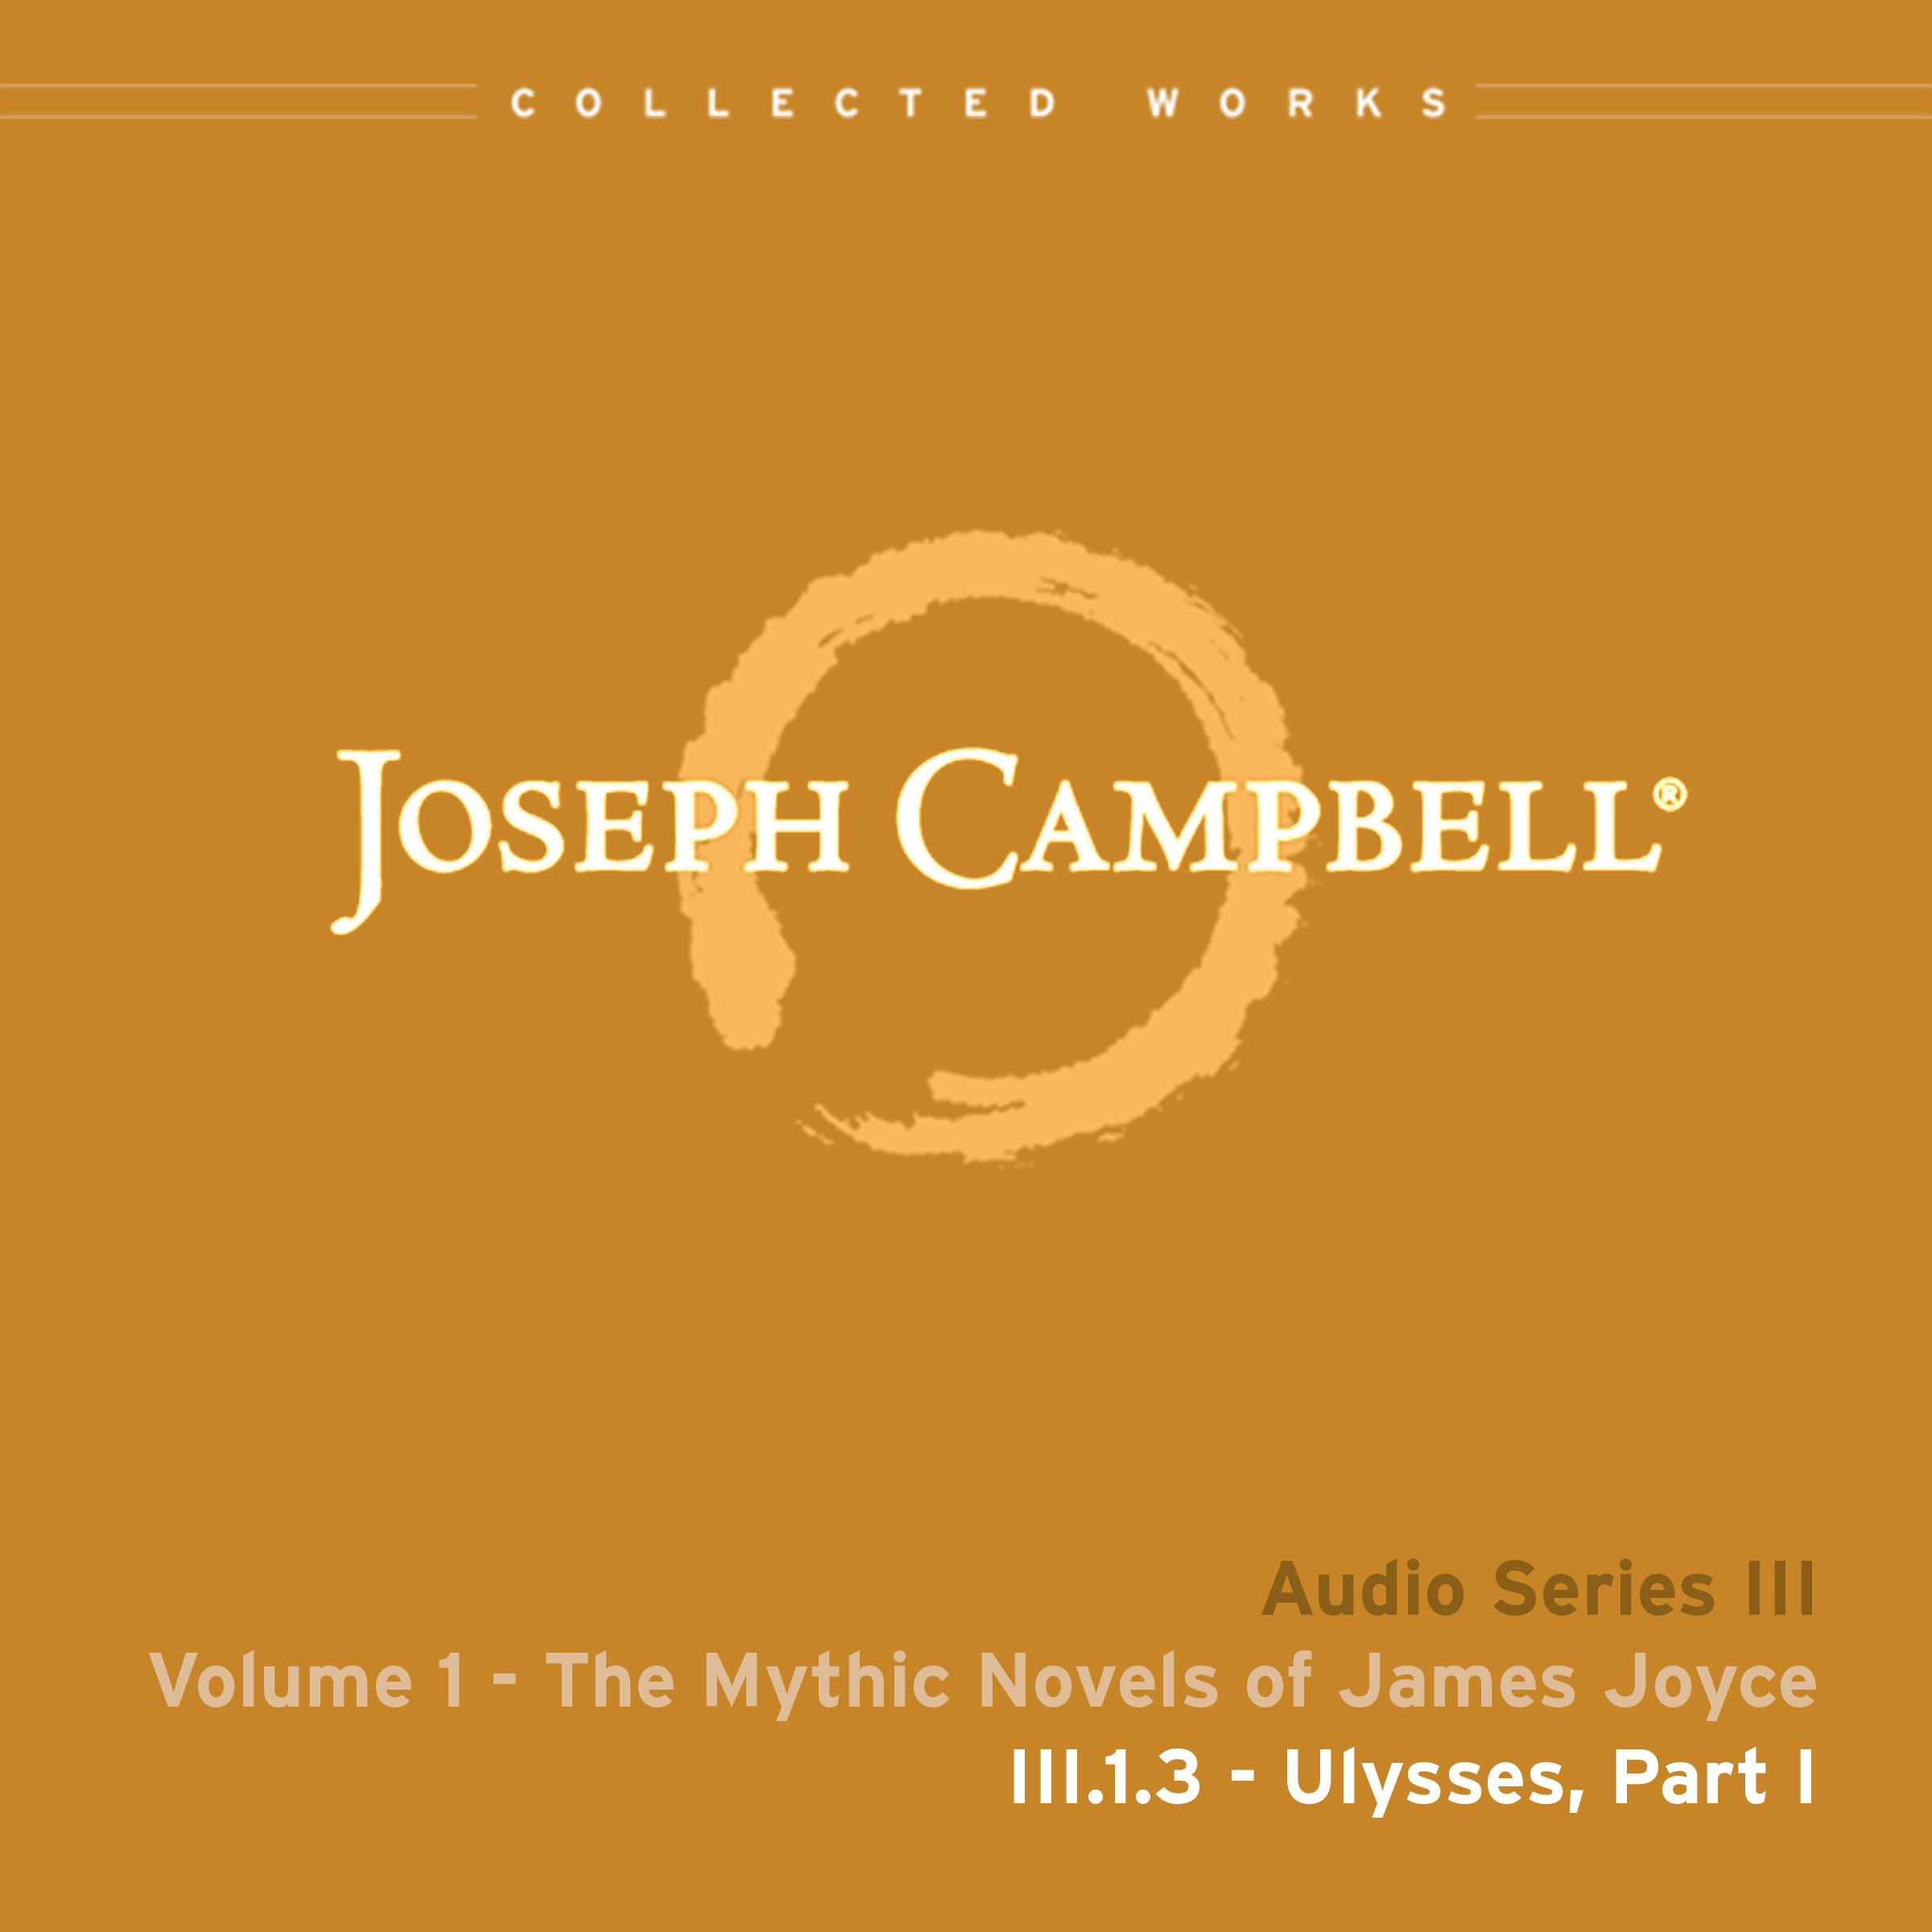 Audio: Lecture III.1.3 - Ulysses Part 1